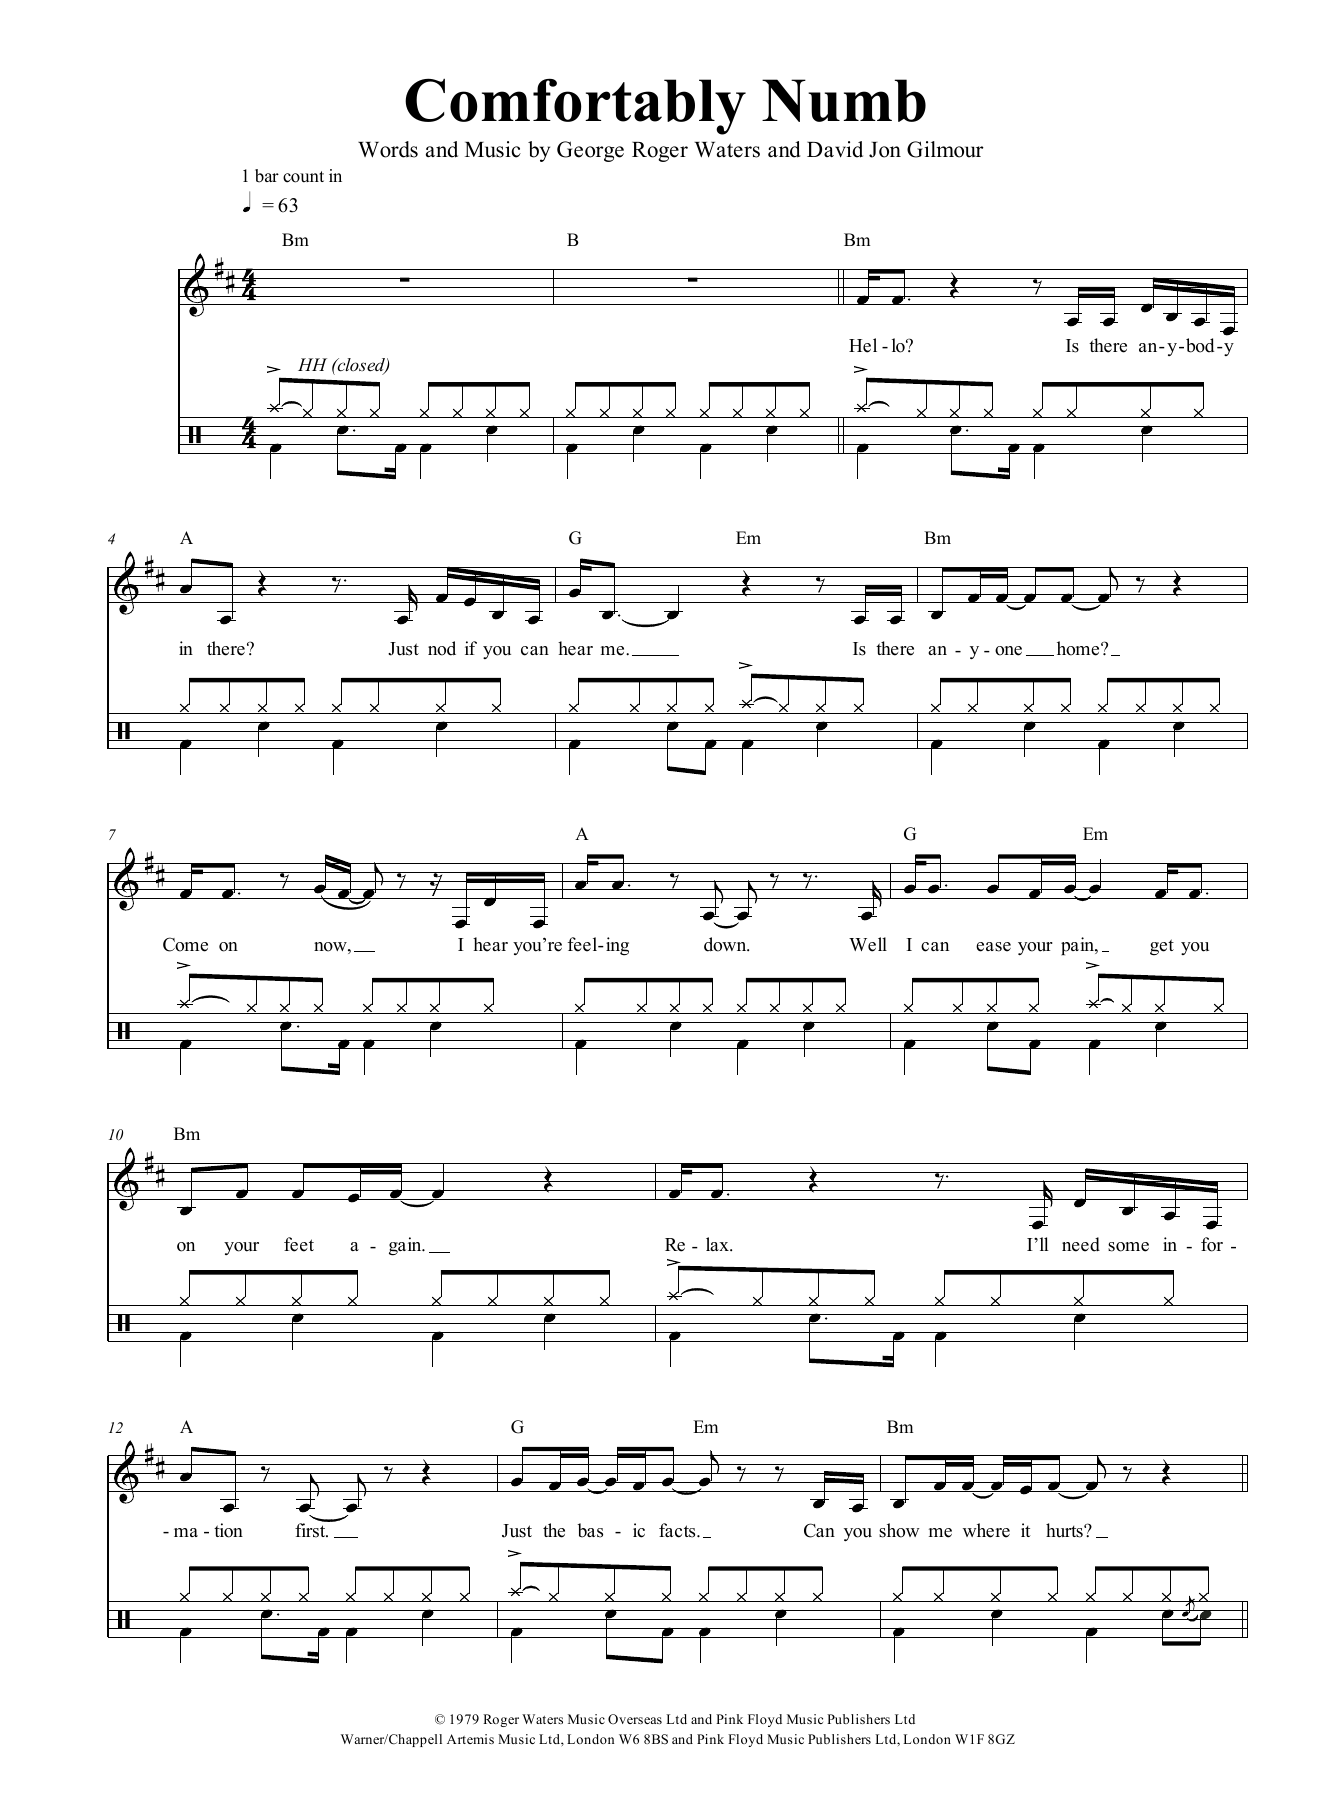 Comfortably Numb by Pink Floyd Guitar Chords/Lyrics Digital Sheet Music